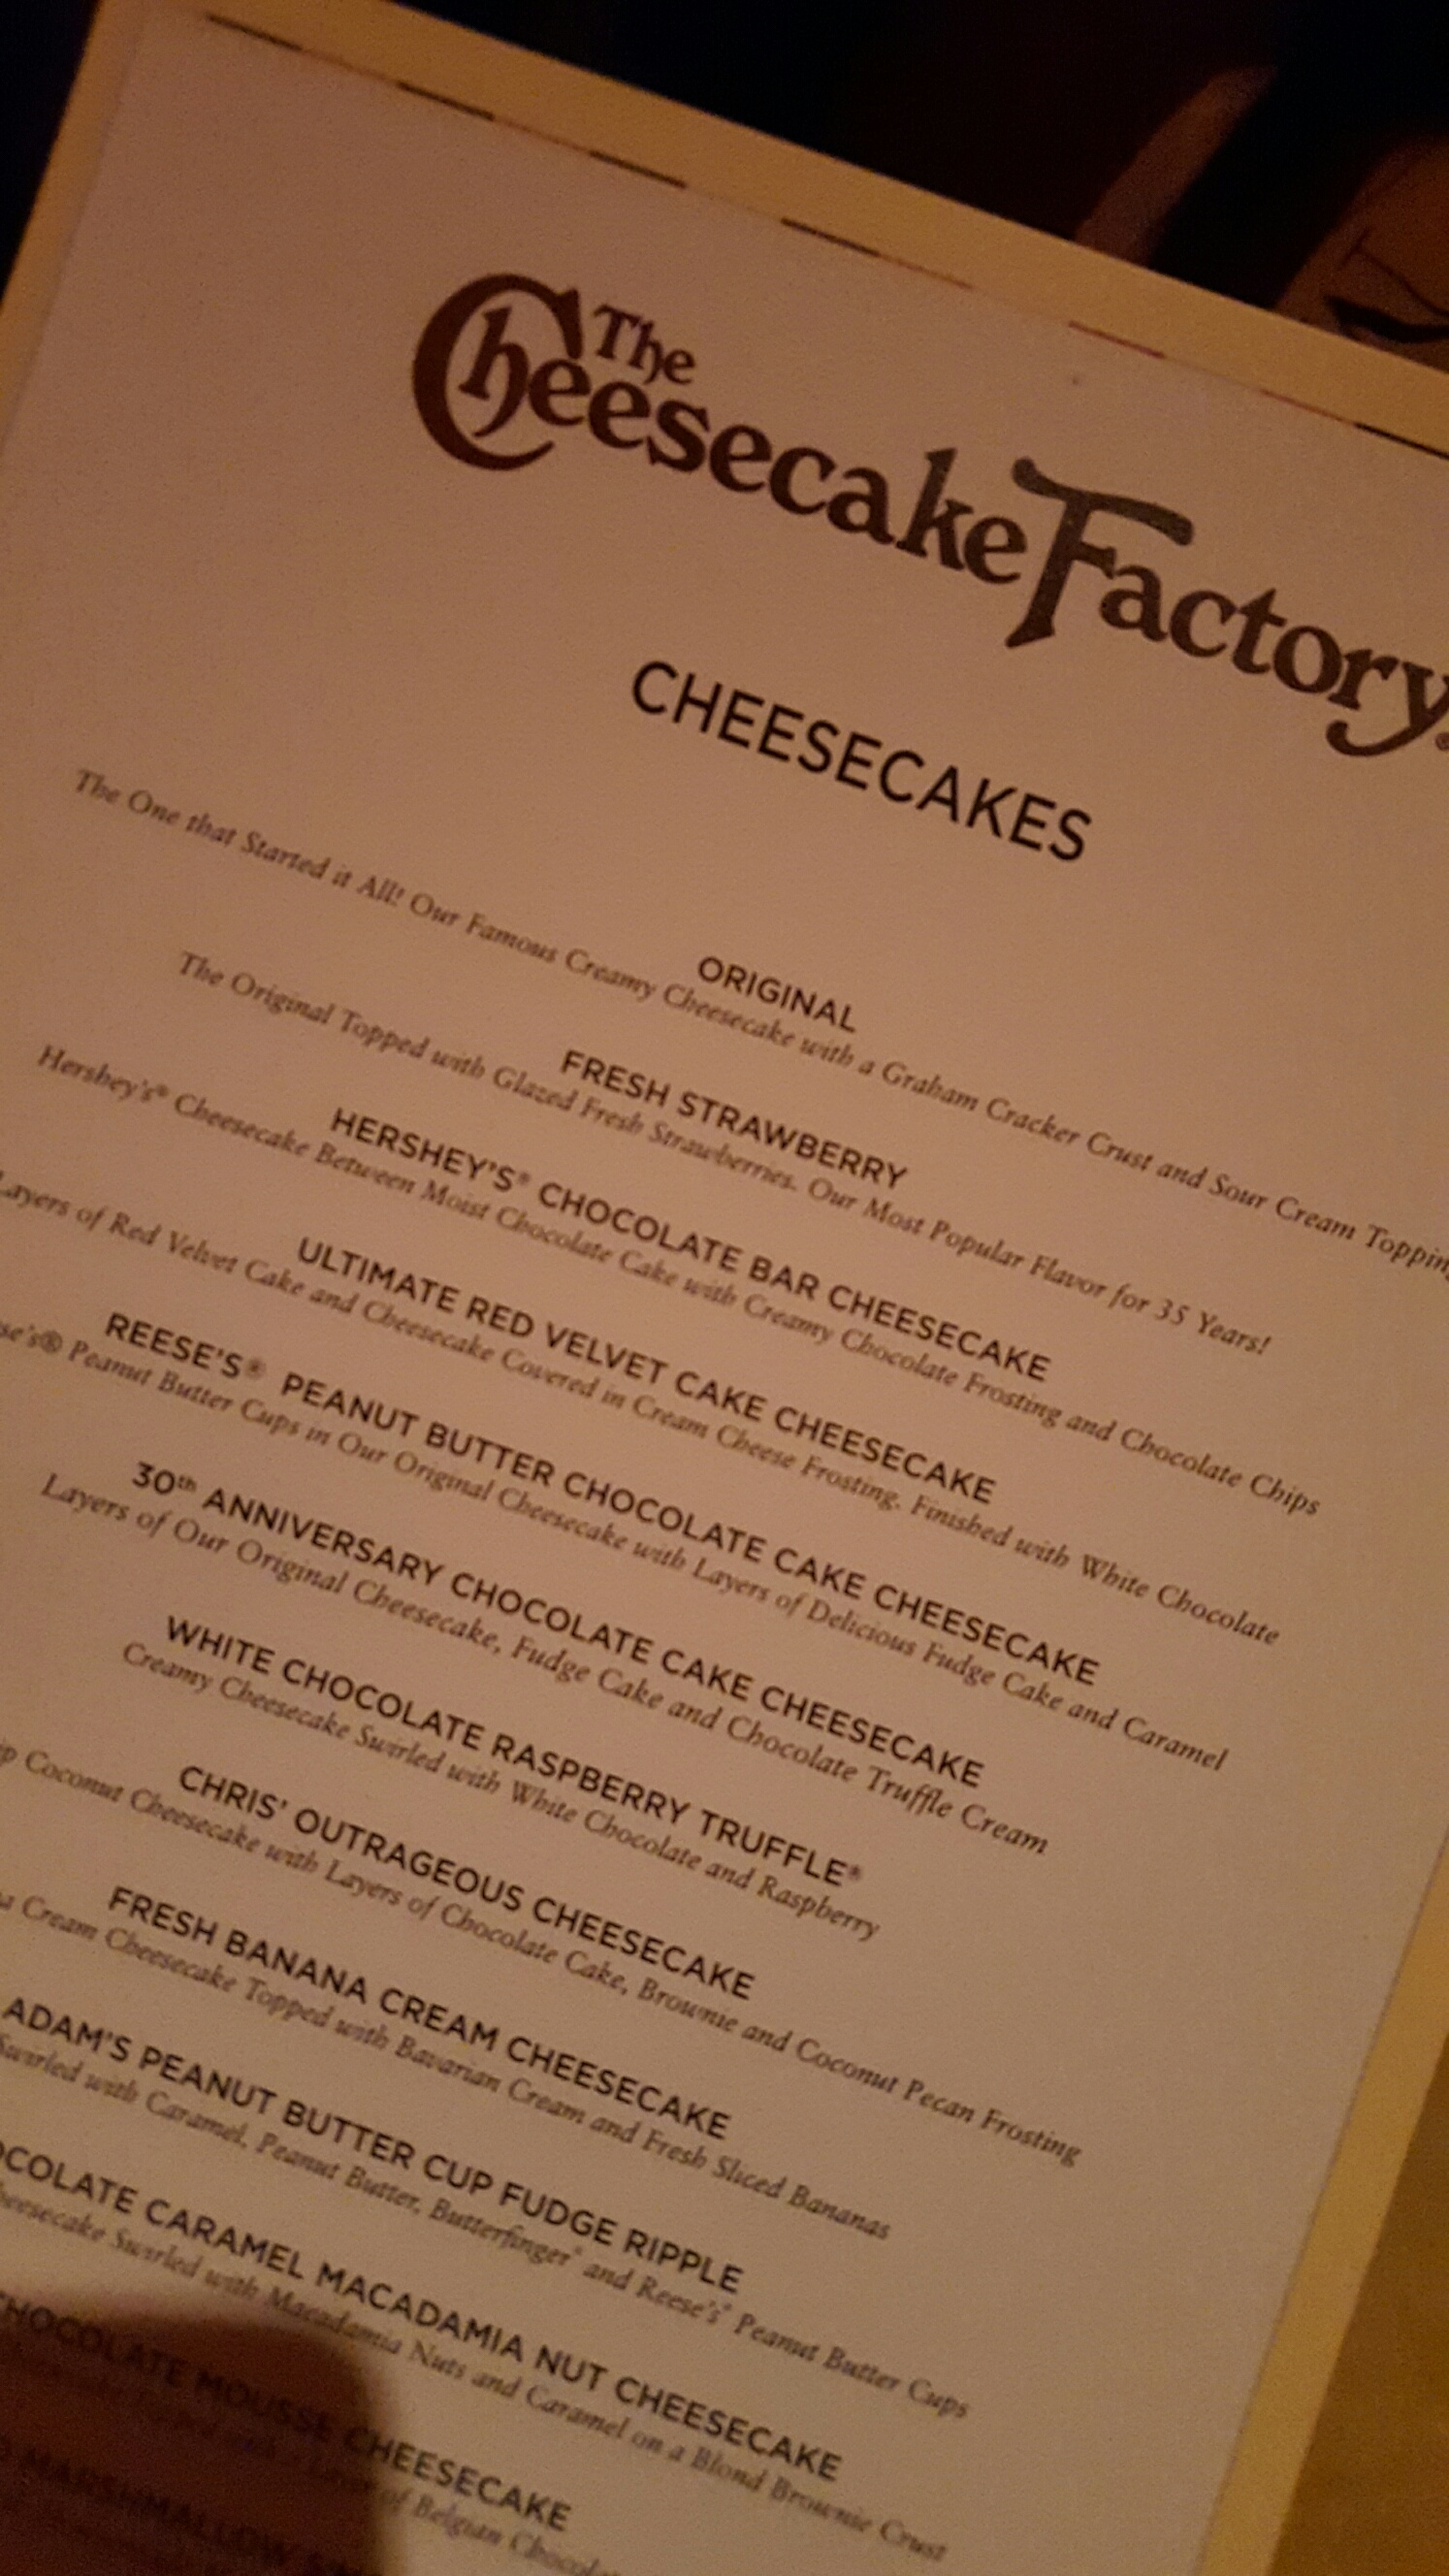 Sterling Download Image X Cheesecake Factory Dubai Menu Ide De Gteau Cheesecake Factory Lunch Menu Prices Cheesecake Factory Lunch Menu Nutrition nice food Cheesecake Factory Lunch Menu